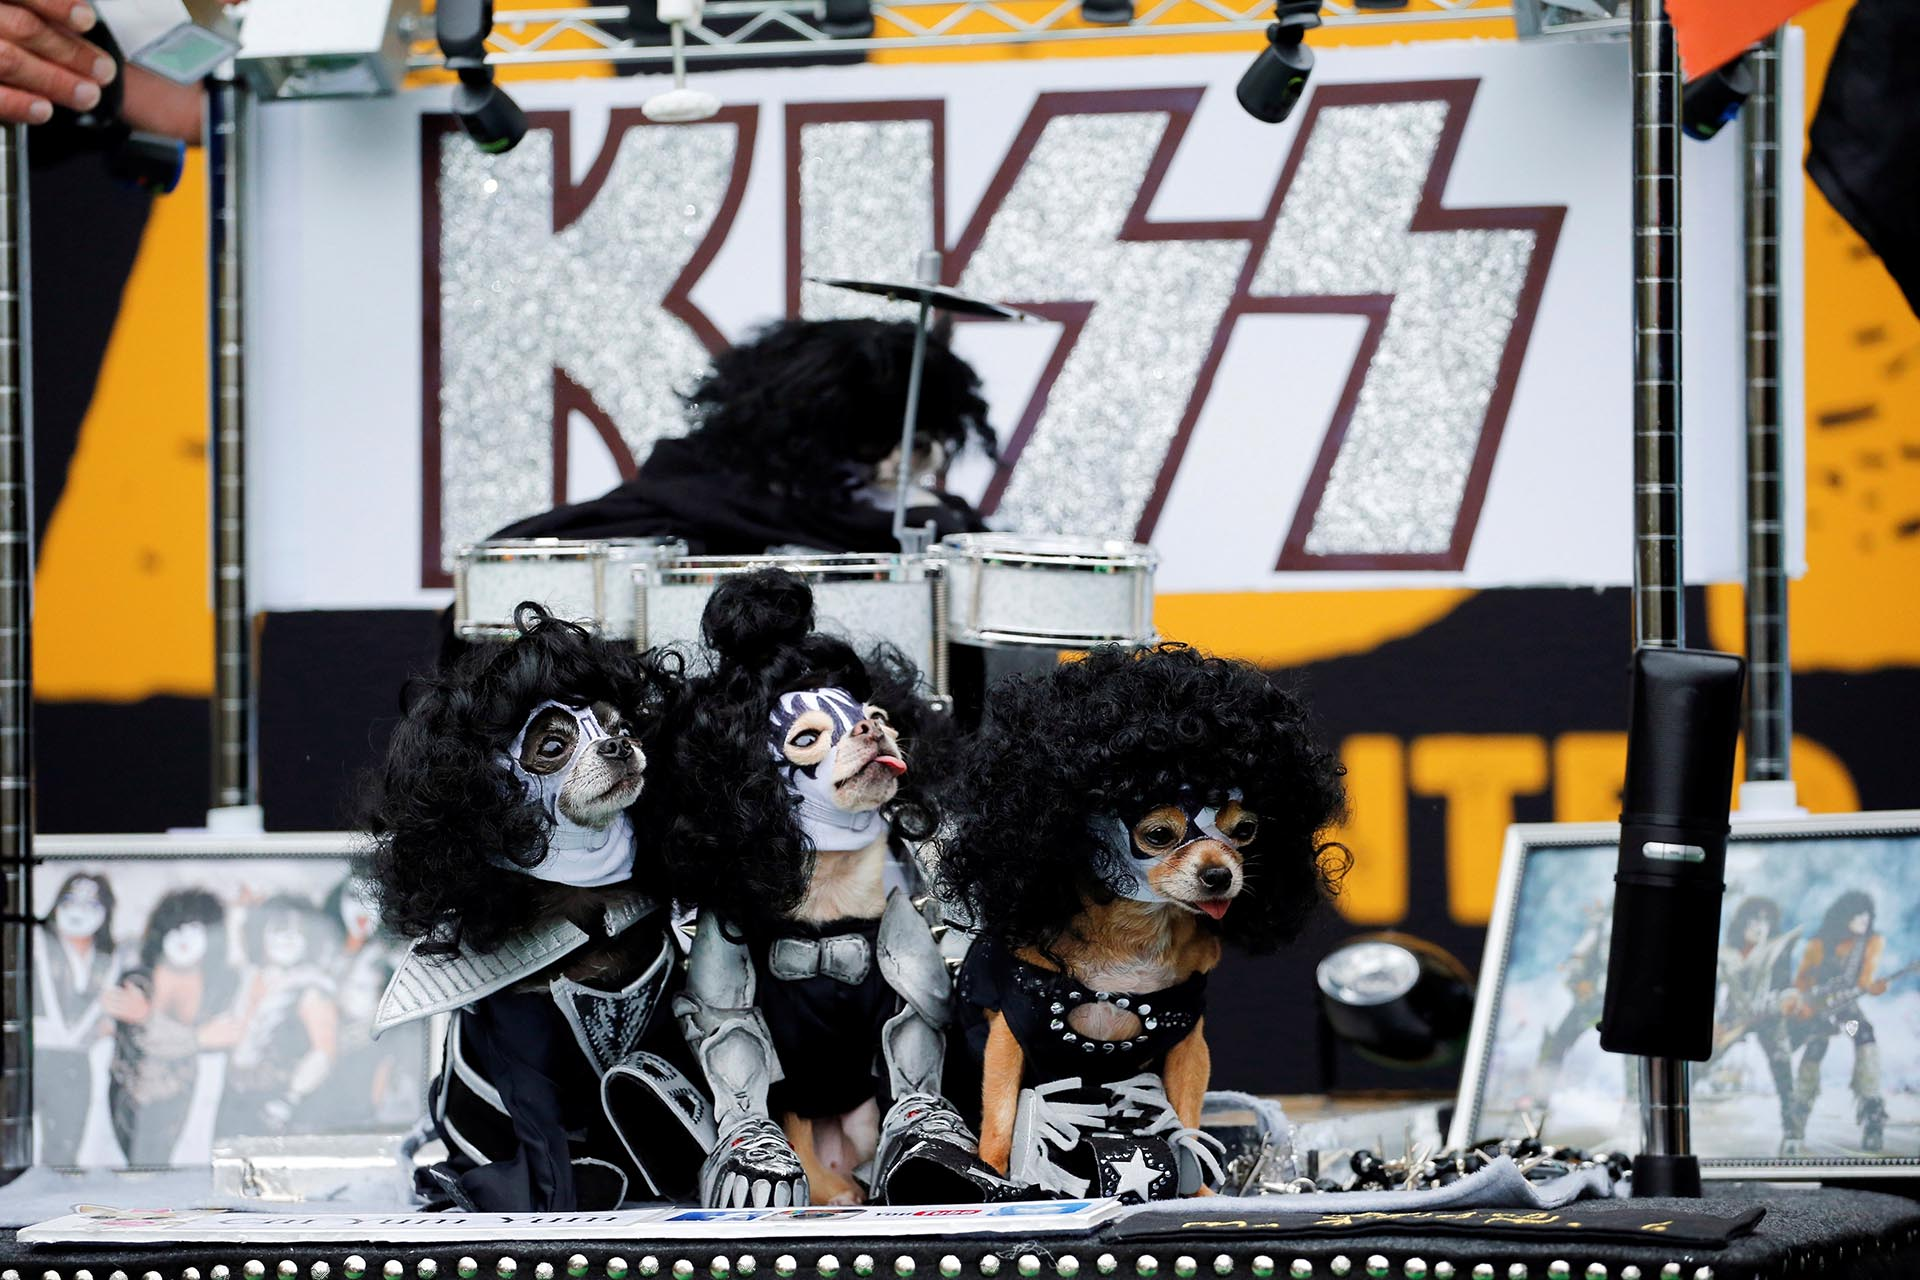 Dogs dressed up like the rock band Kiss take part during the annual halloween dog parade at Manhattan's Tompkins Square Park in New York